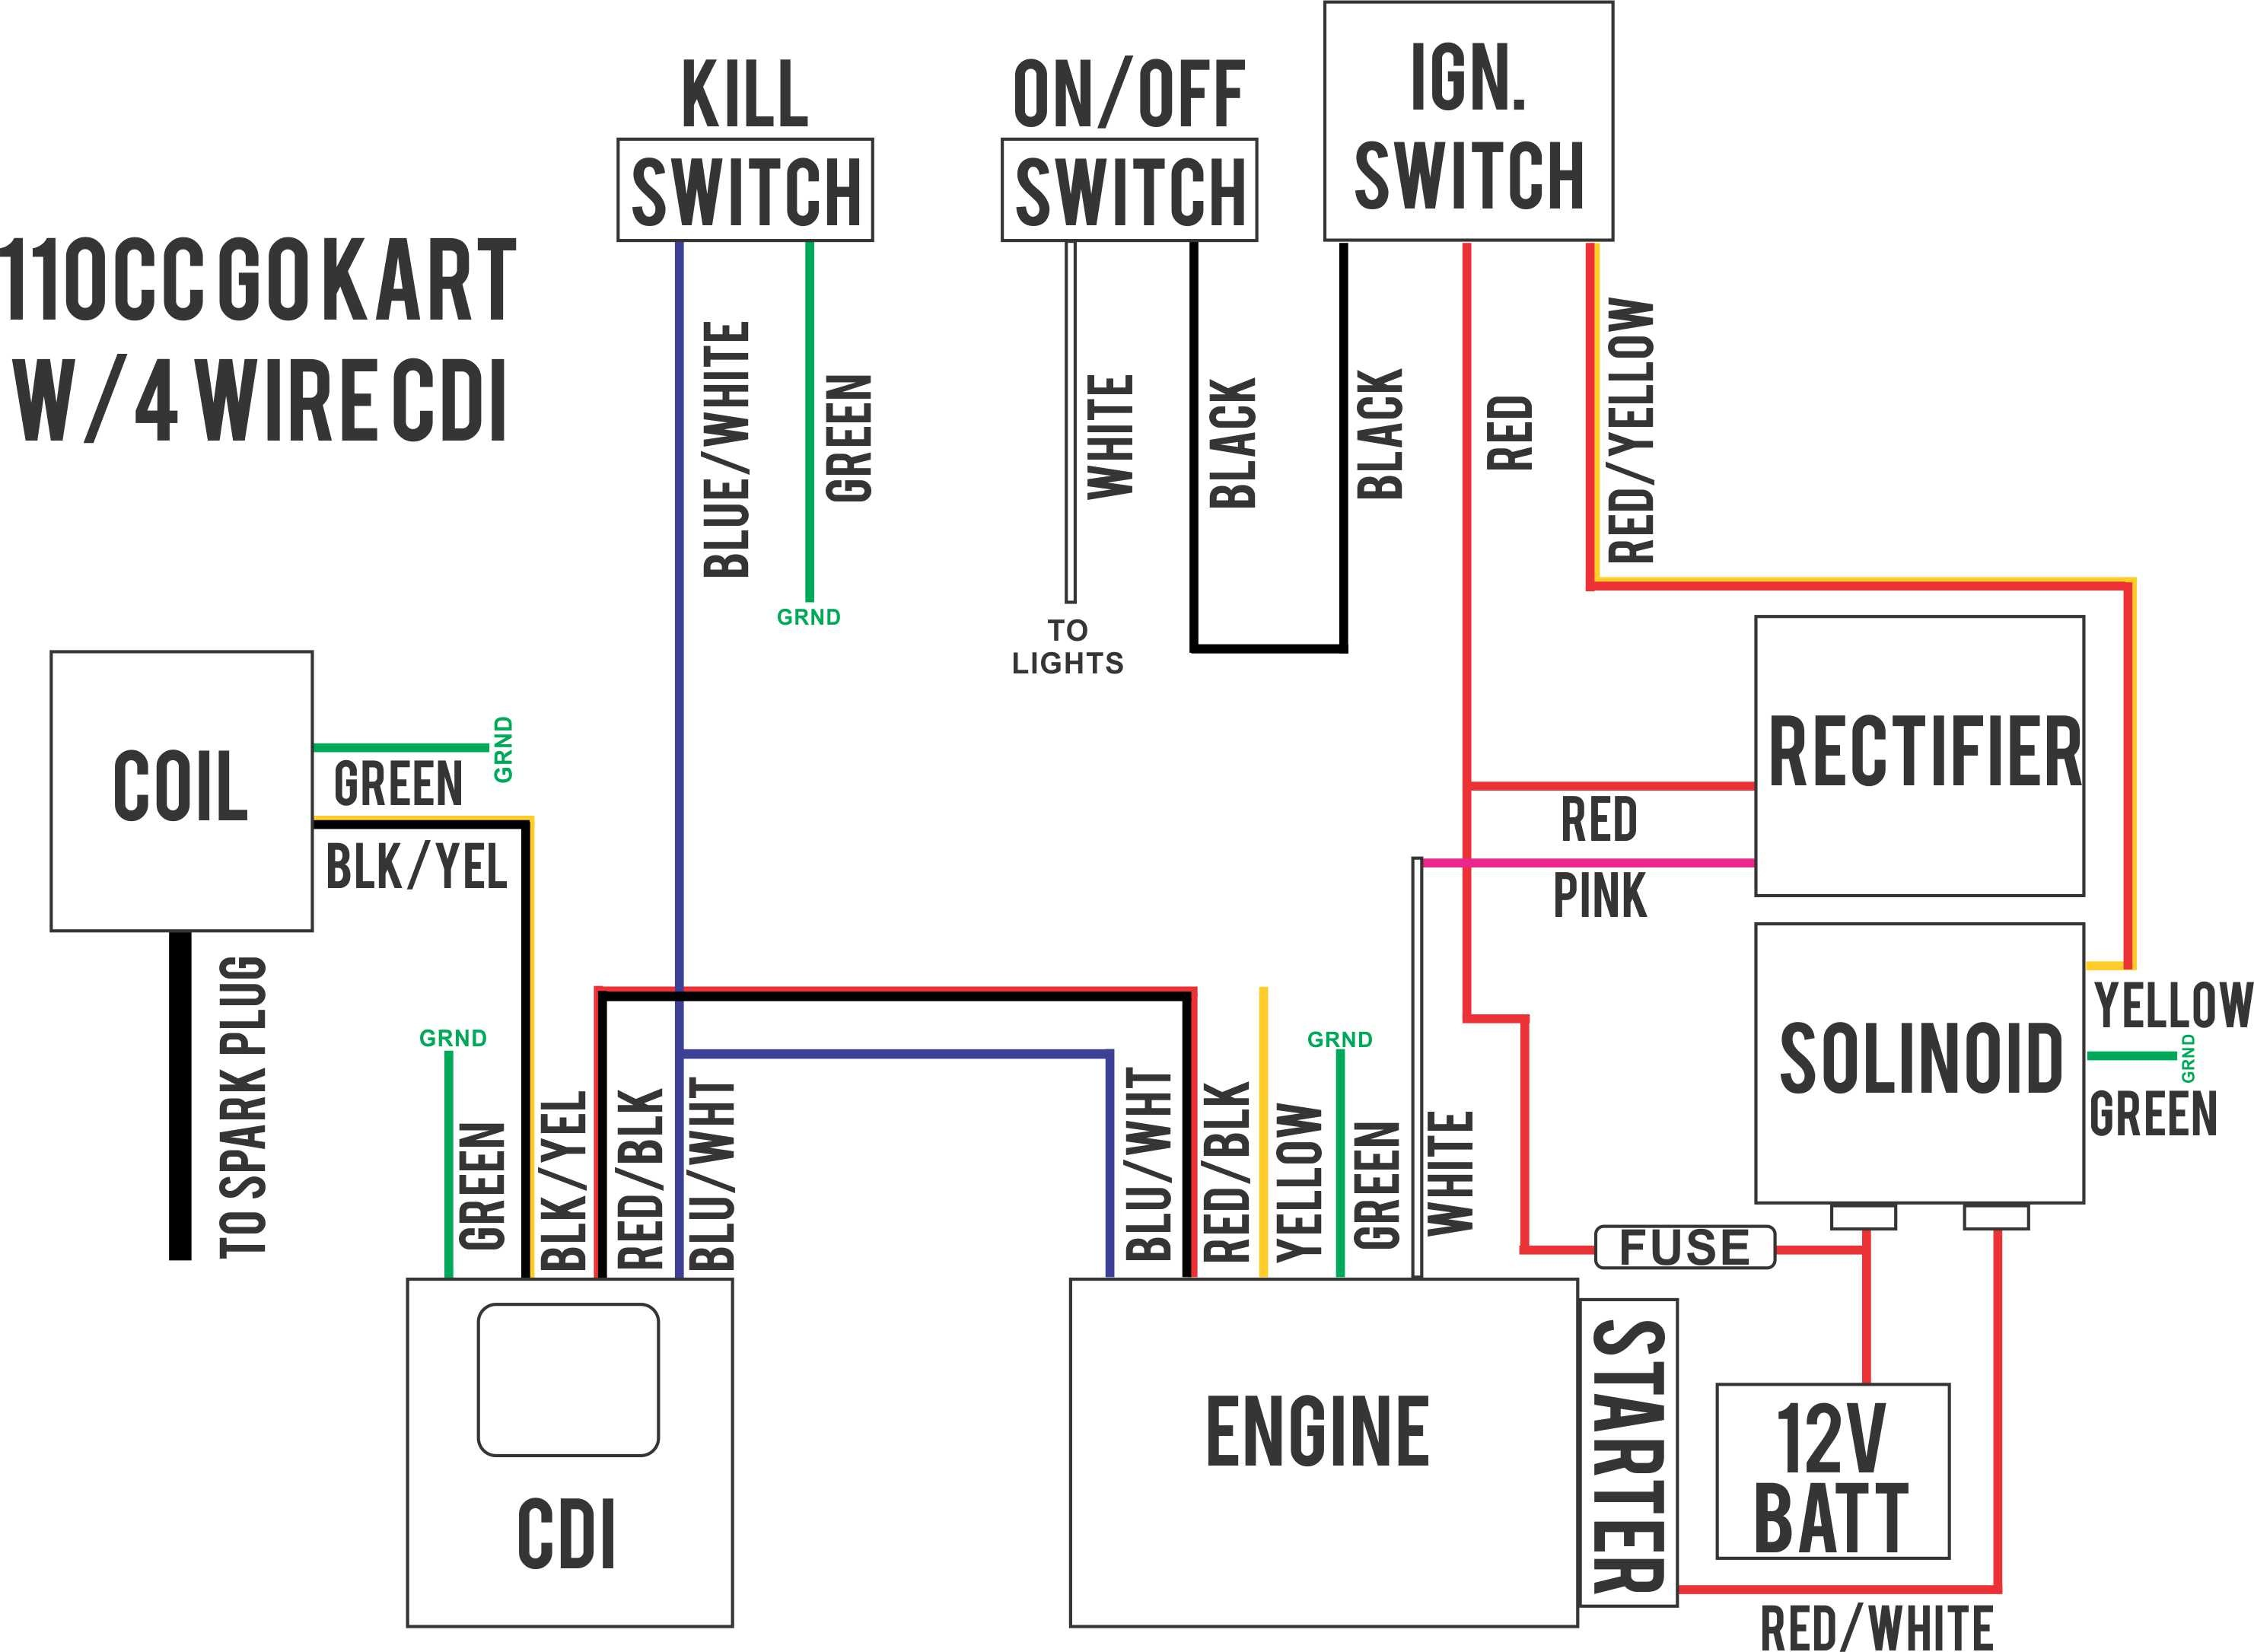 mini harley 43cc scooter wiring diagram car wiring diagrams rh ethermag co tank 150cc scooter wiring diagram